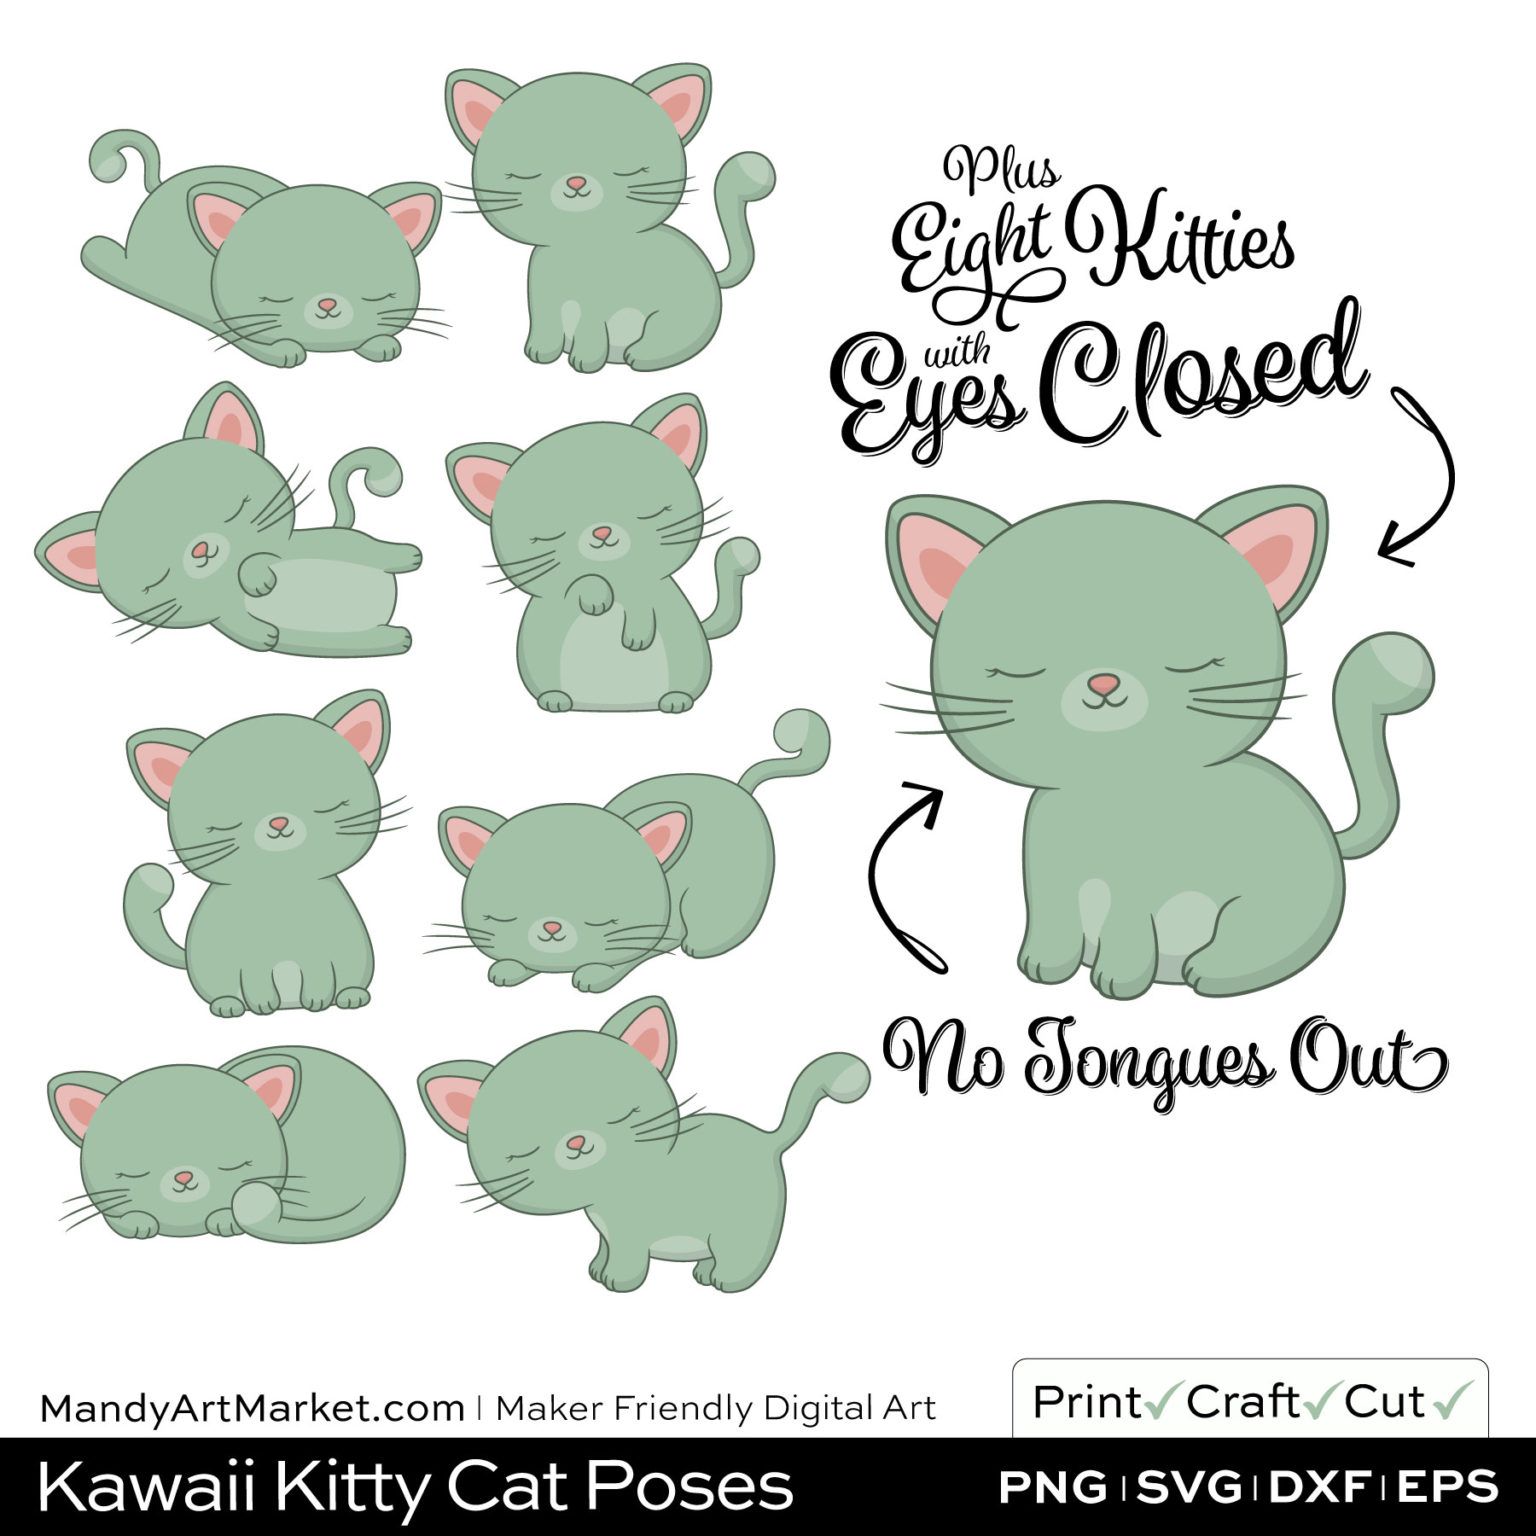 Sage Green Kawaii Kitty Cat Poses Clipart PNGs Included in Download